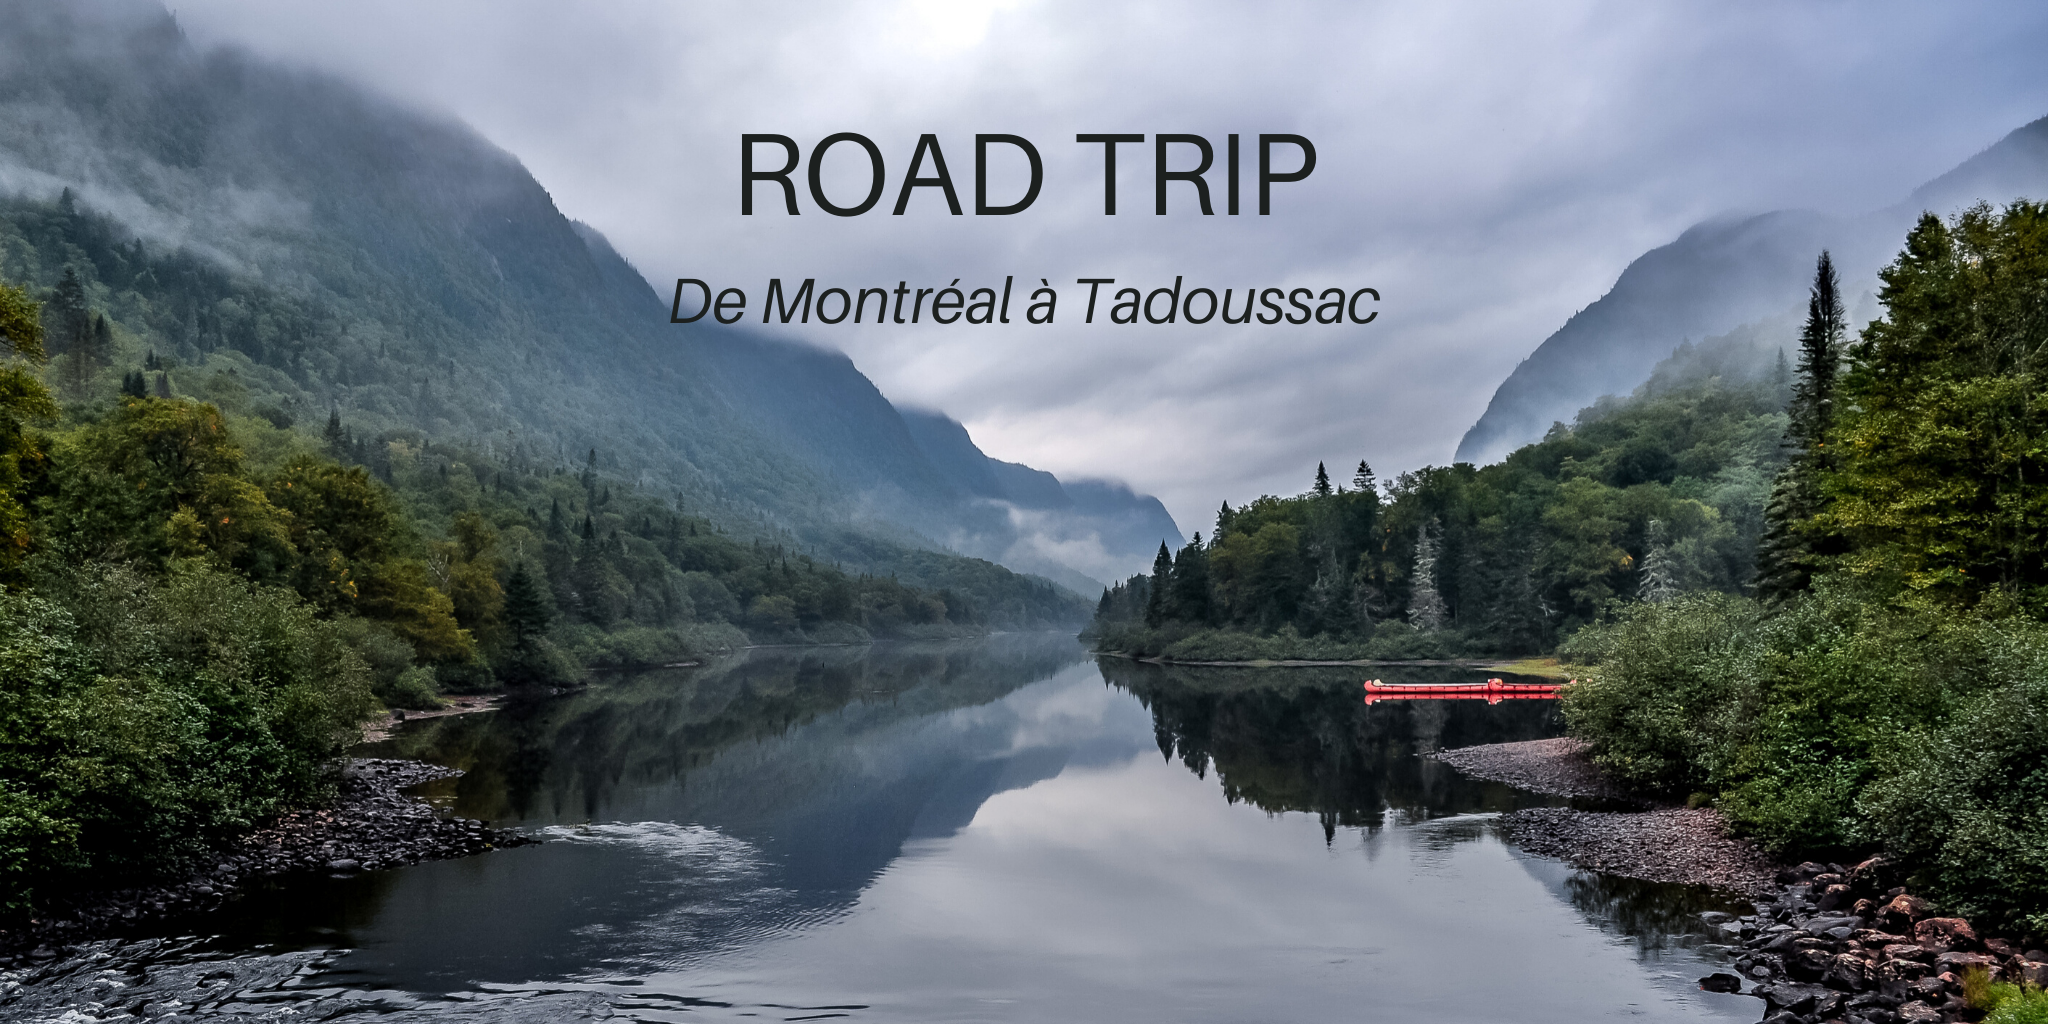 Jacques Cartier road trip